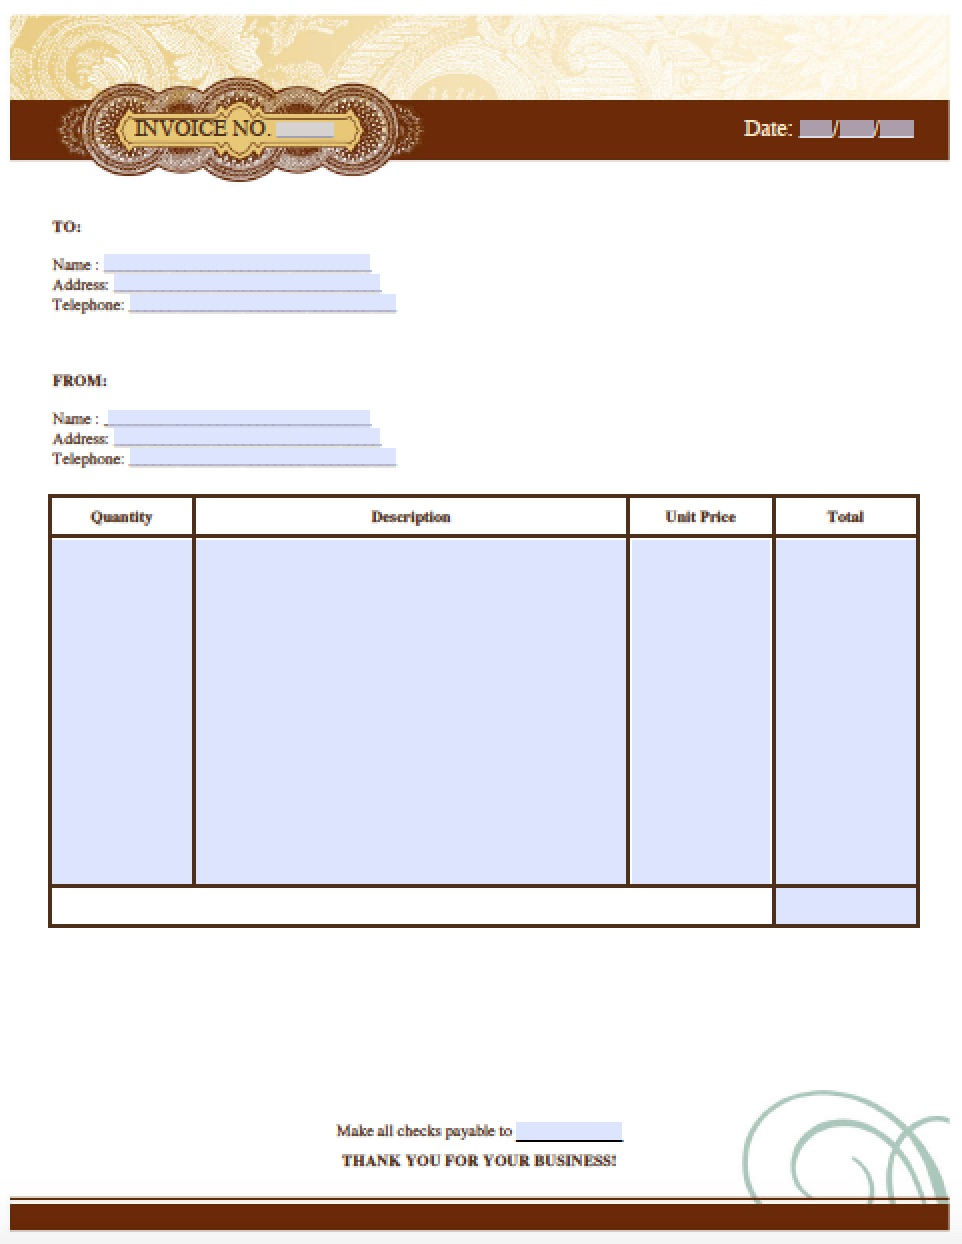 free auto (body) repair invoice template | excel | pdf | word (.doc), Invoice templates